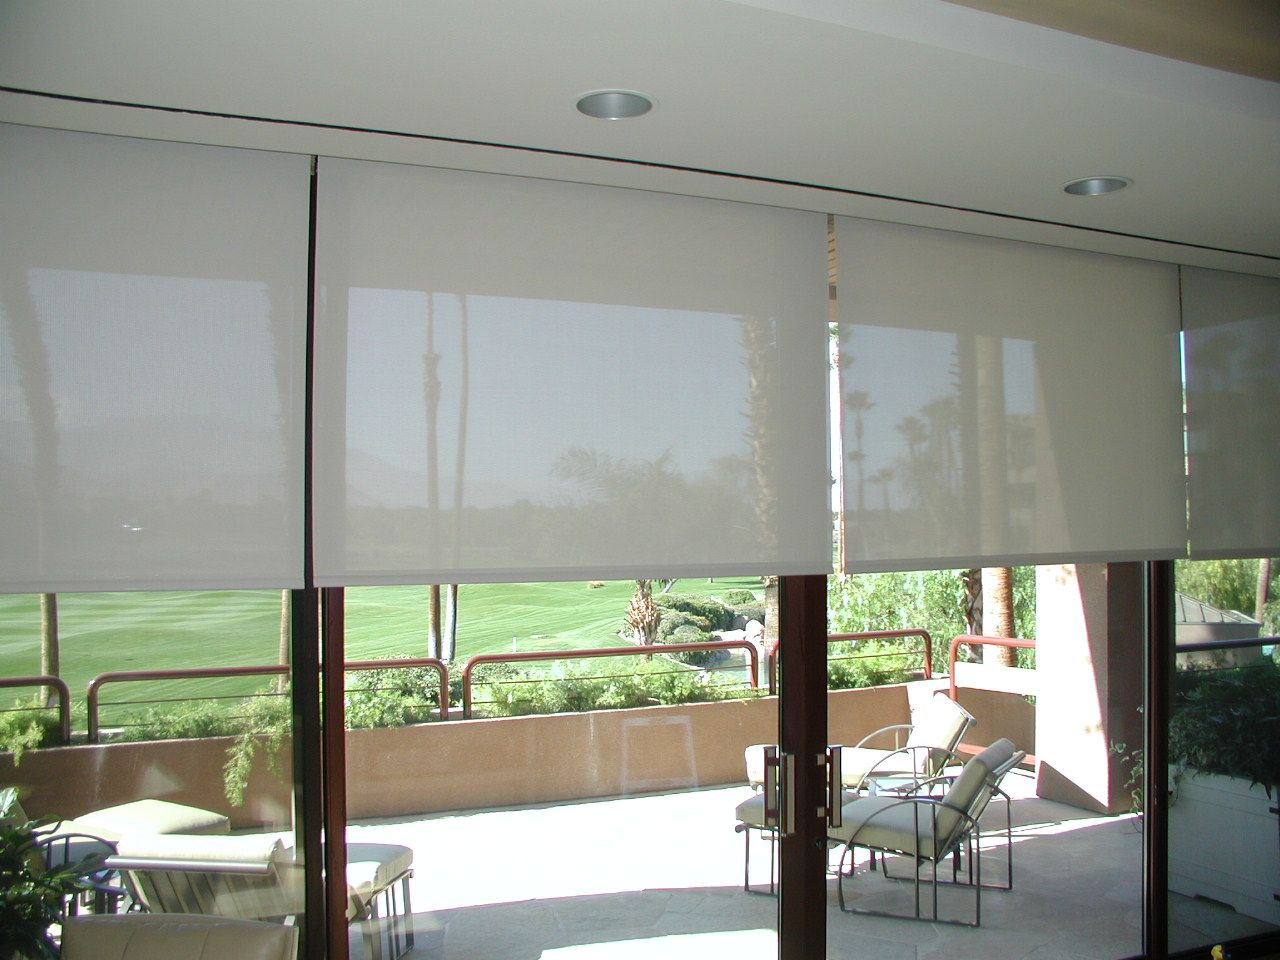 Top Roll Up Shades For Your Home Drapery Room Ideas